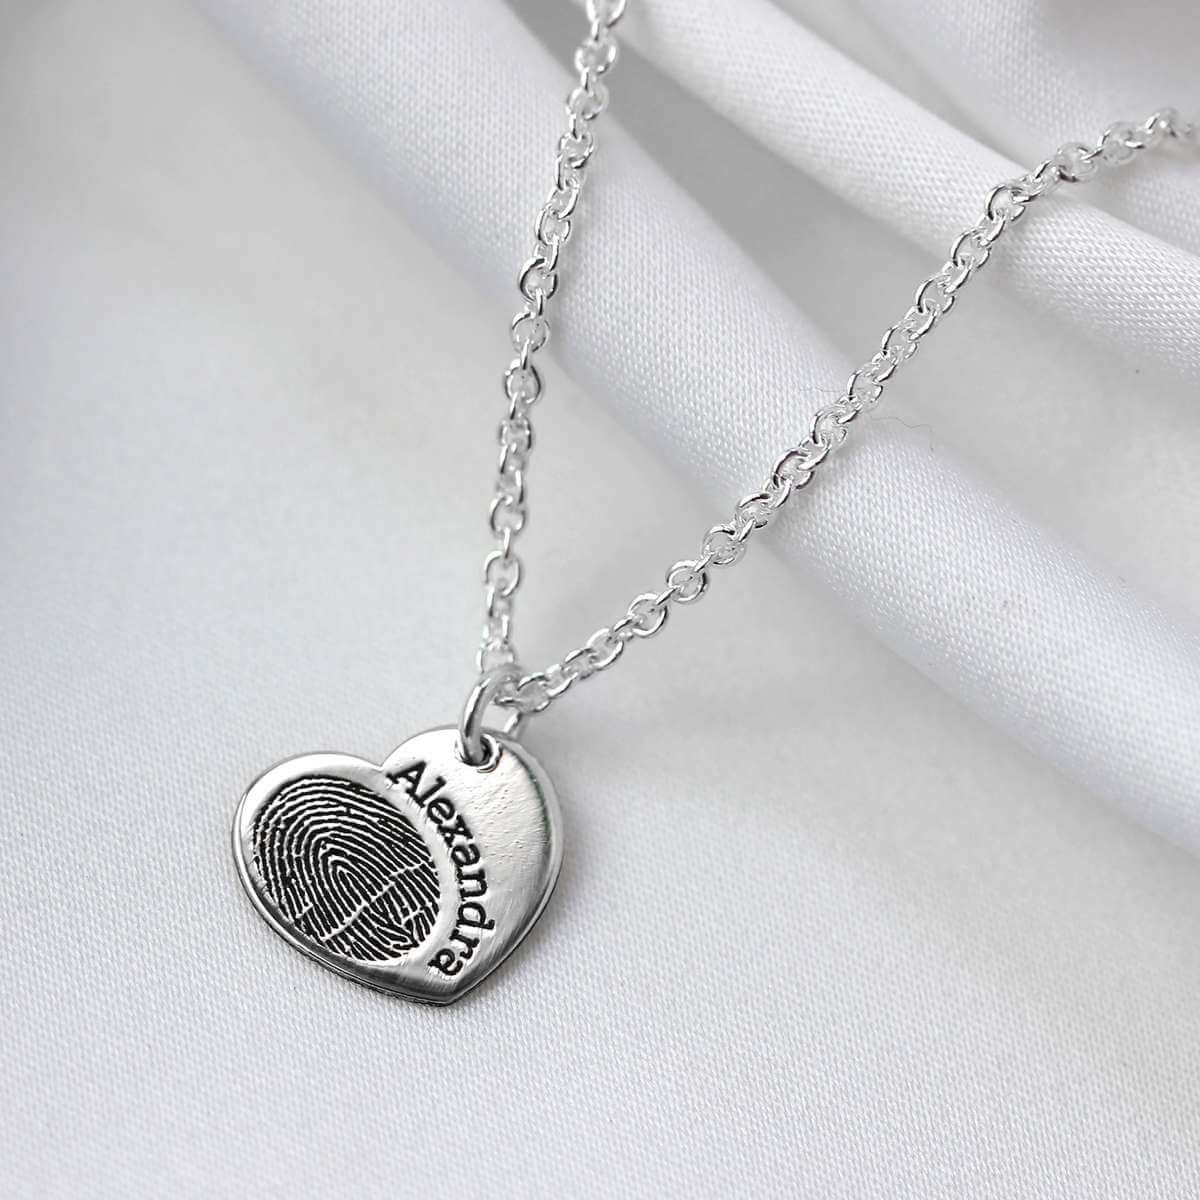 Bespoke Sterling Silver Fingerprint Heart Name Necklace 16 - 24 Inch